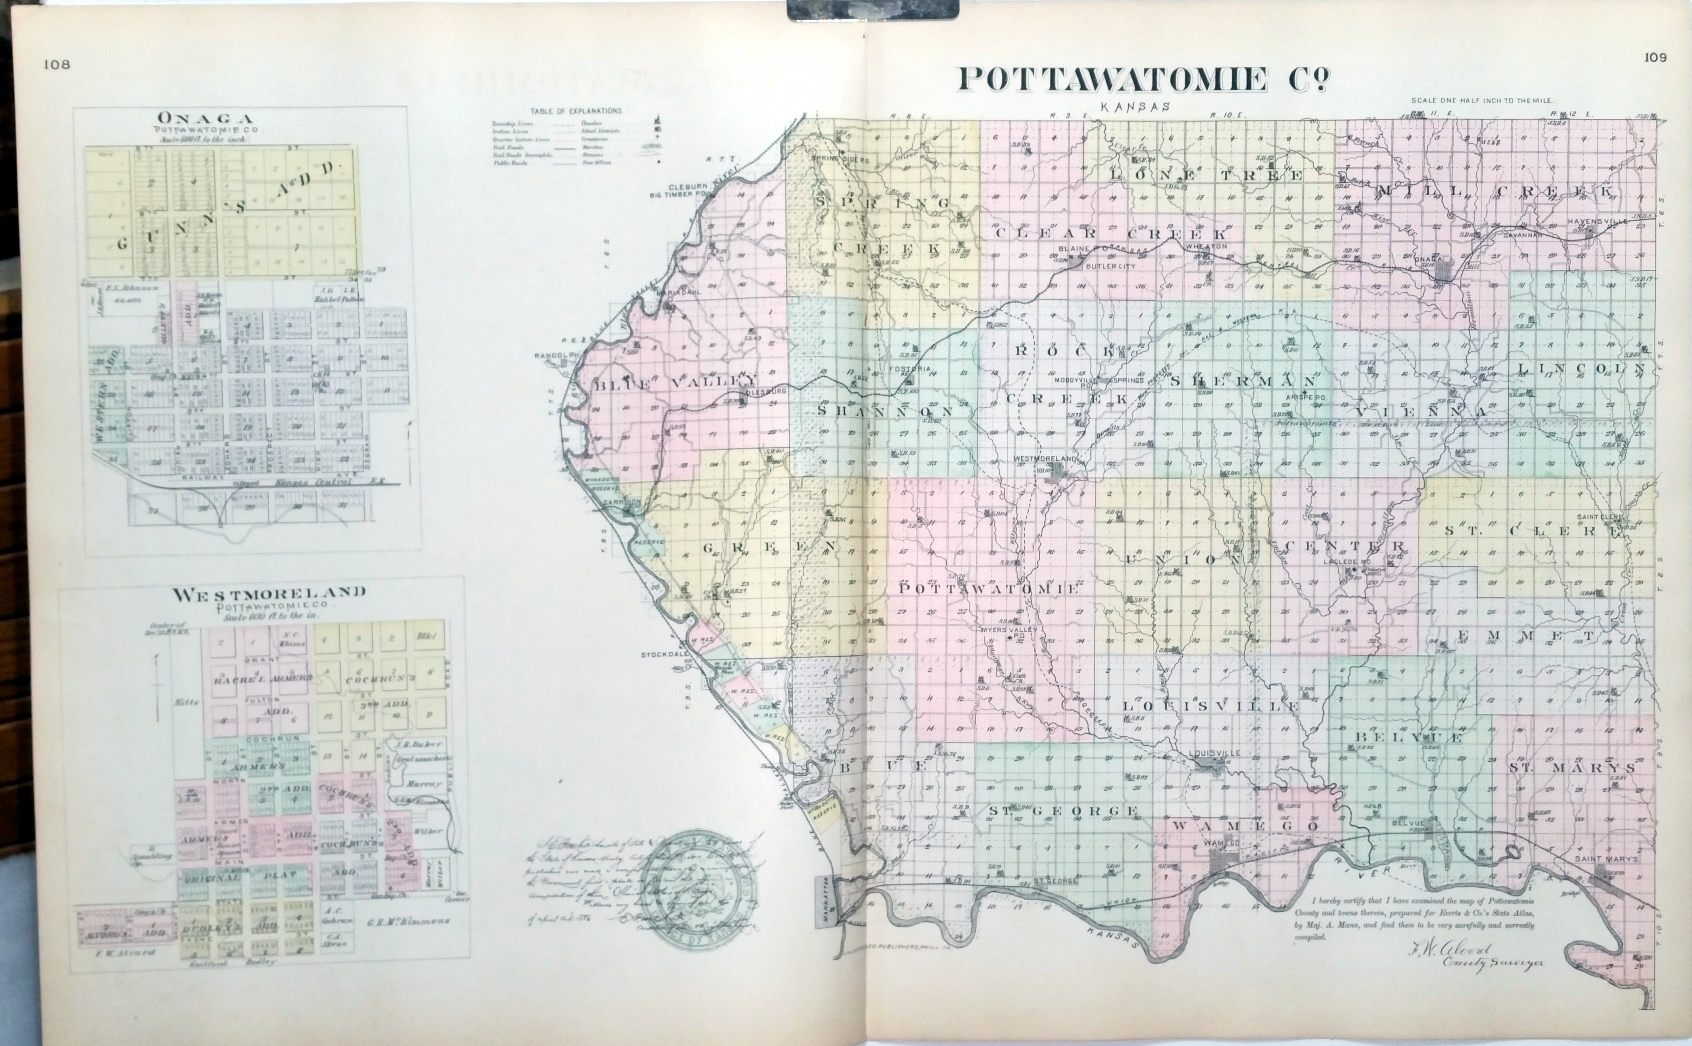 [Map] Pottawatomie County, Kansas, with Onaga & Westmoreland of  Pottawatomie Co  [backed with] Louisville, Wamego, Moodyville Springs,  Wheaton,